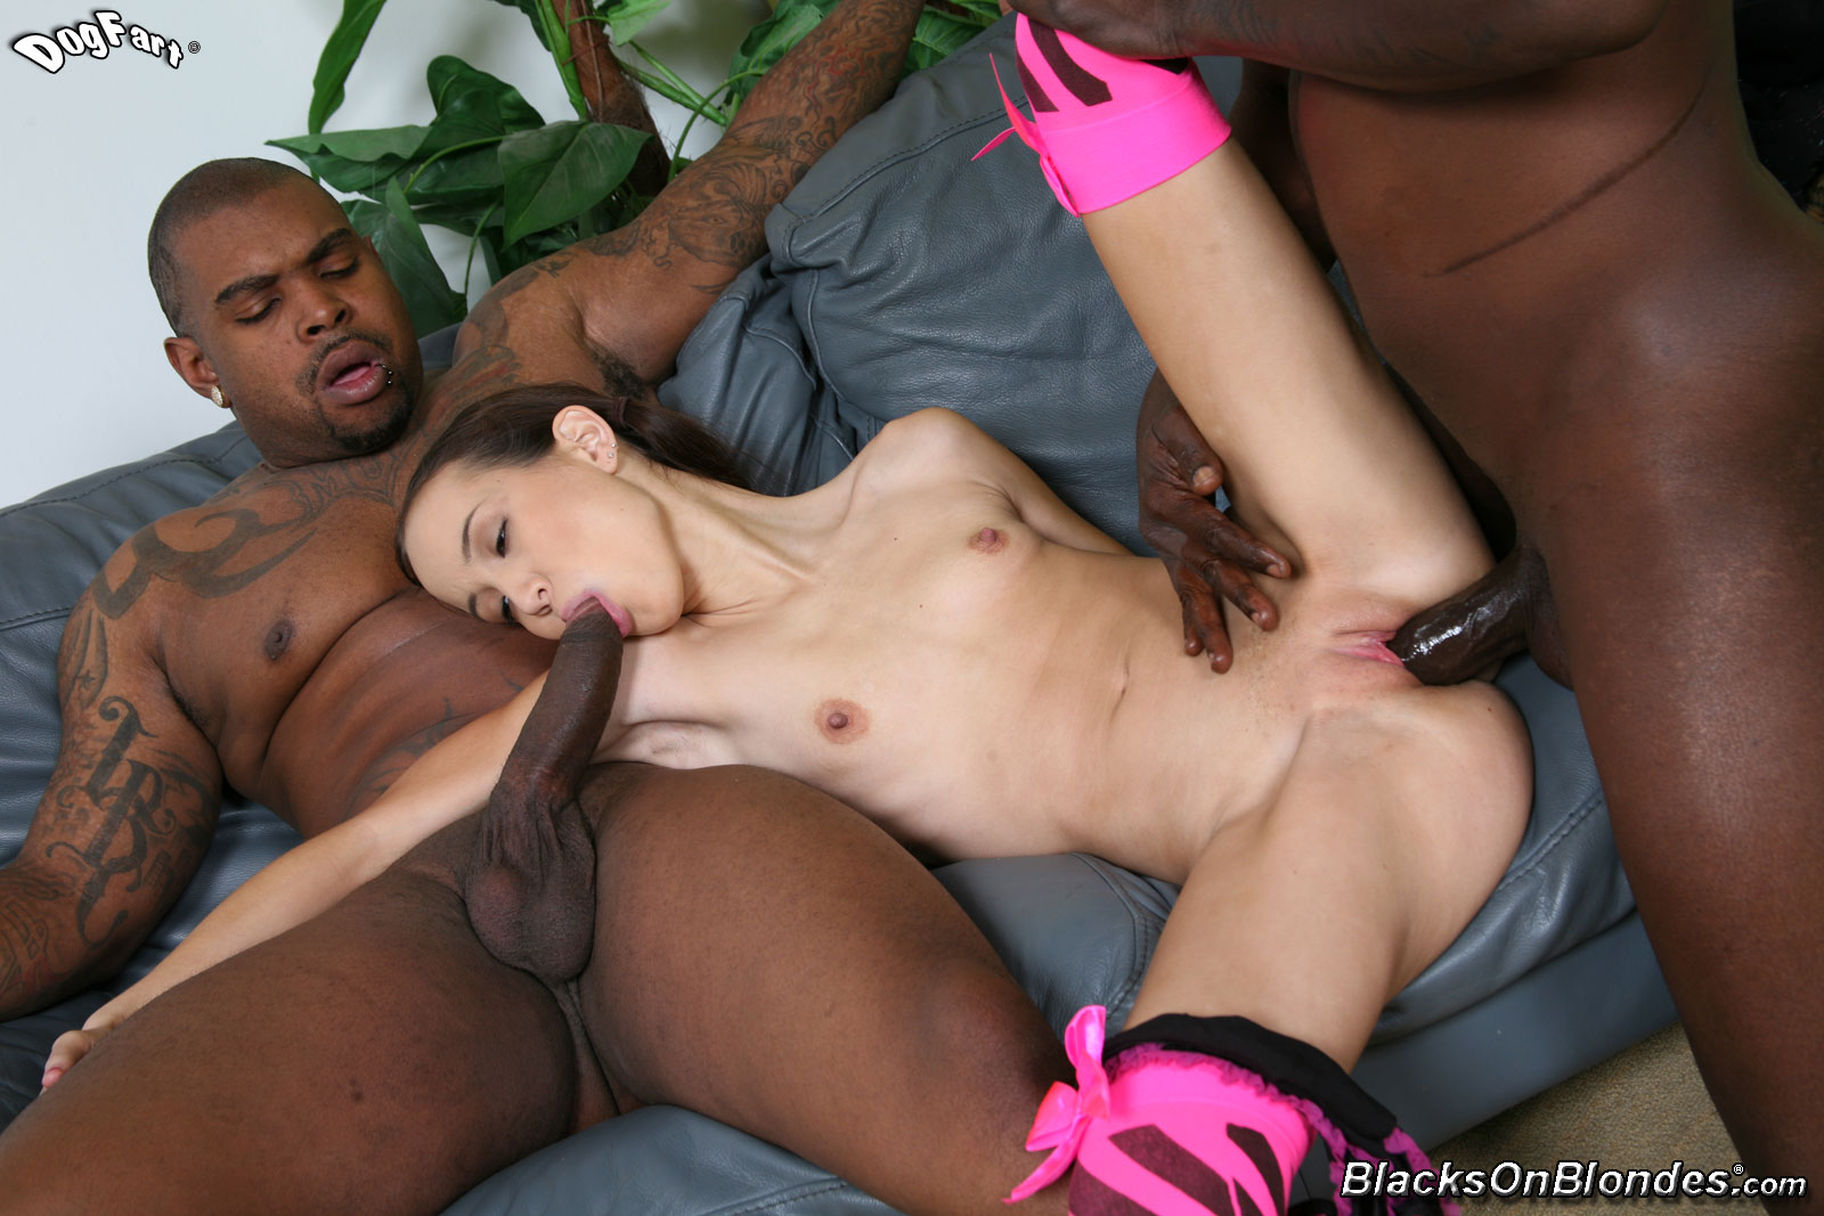 enormous black dick porn Big Black Cock Porn » Popular Videos » Page 1 - Foxporns.com.